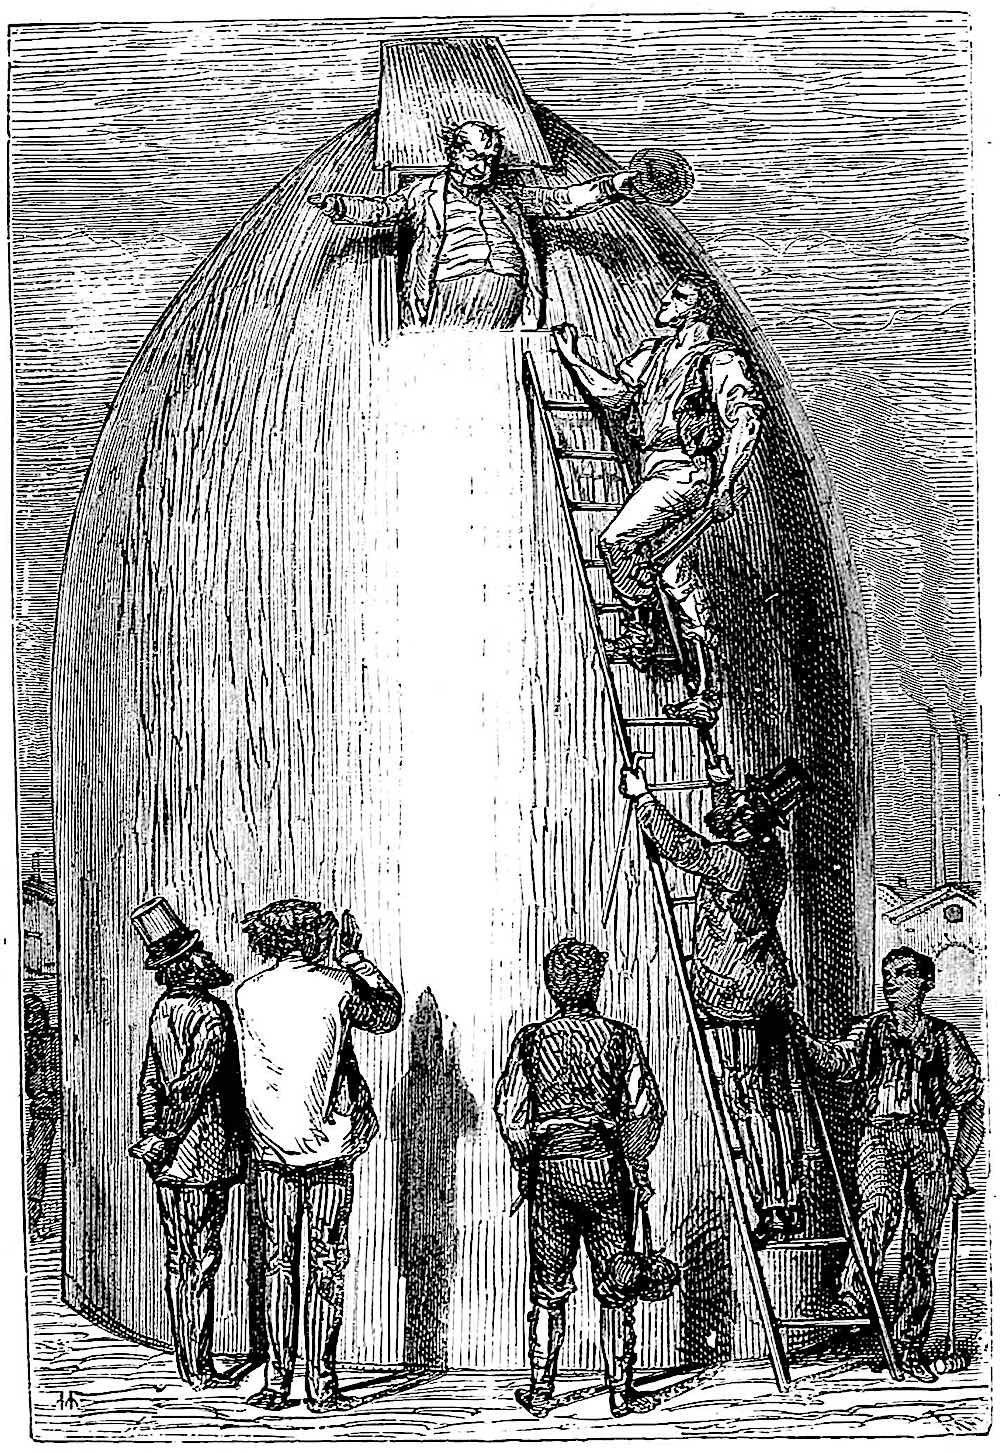 an 1872 illustration from a Jules Verne book, rocket to the moon, retrofuture